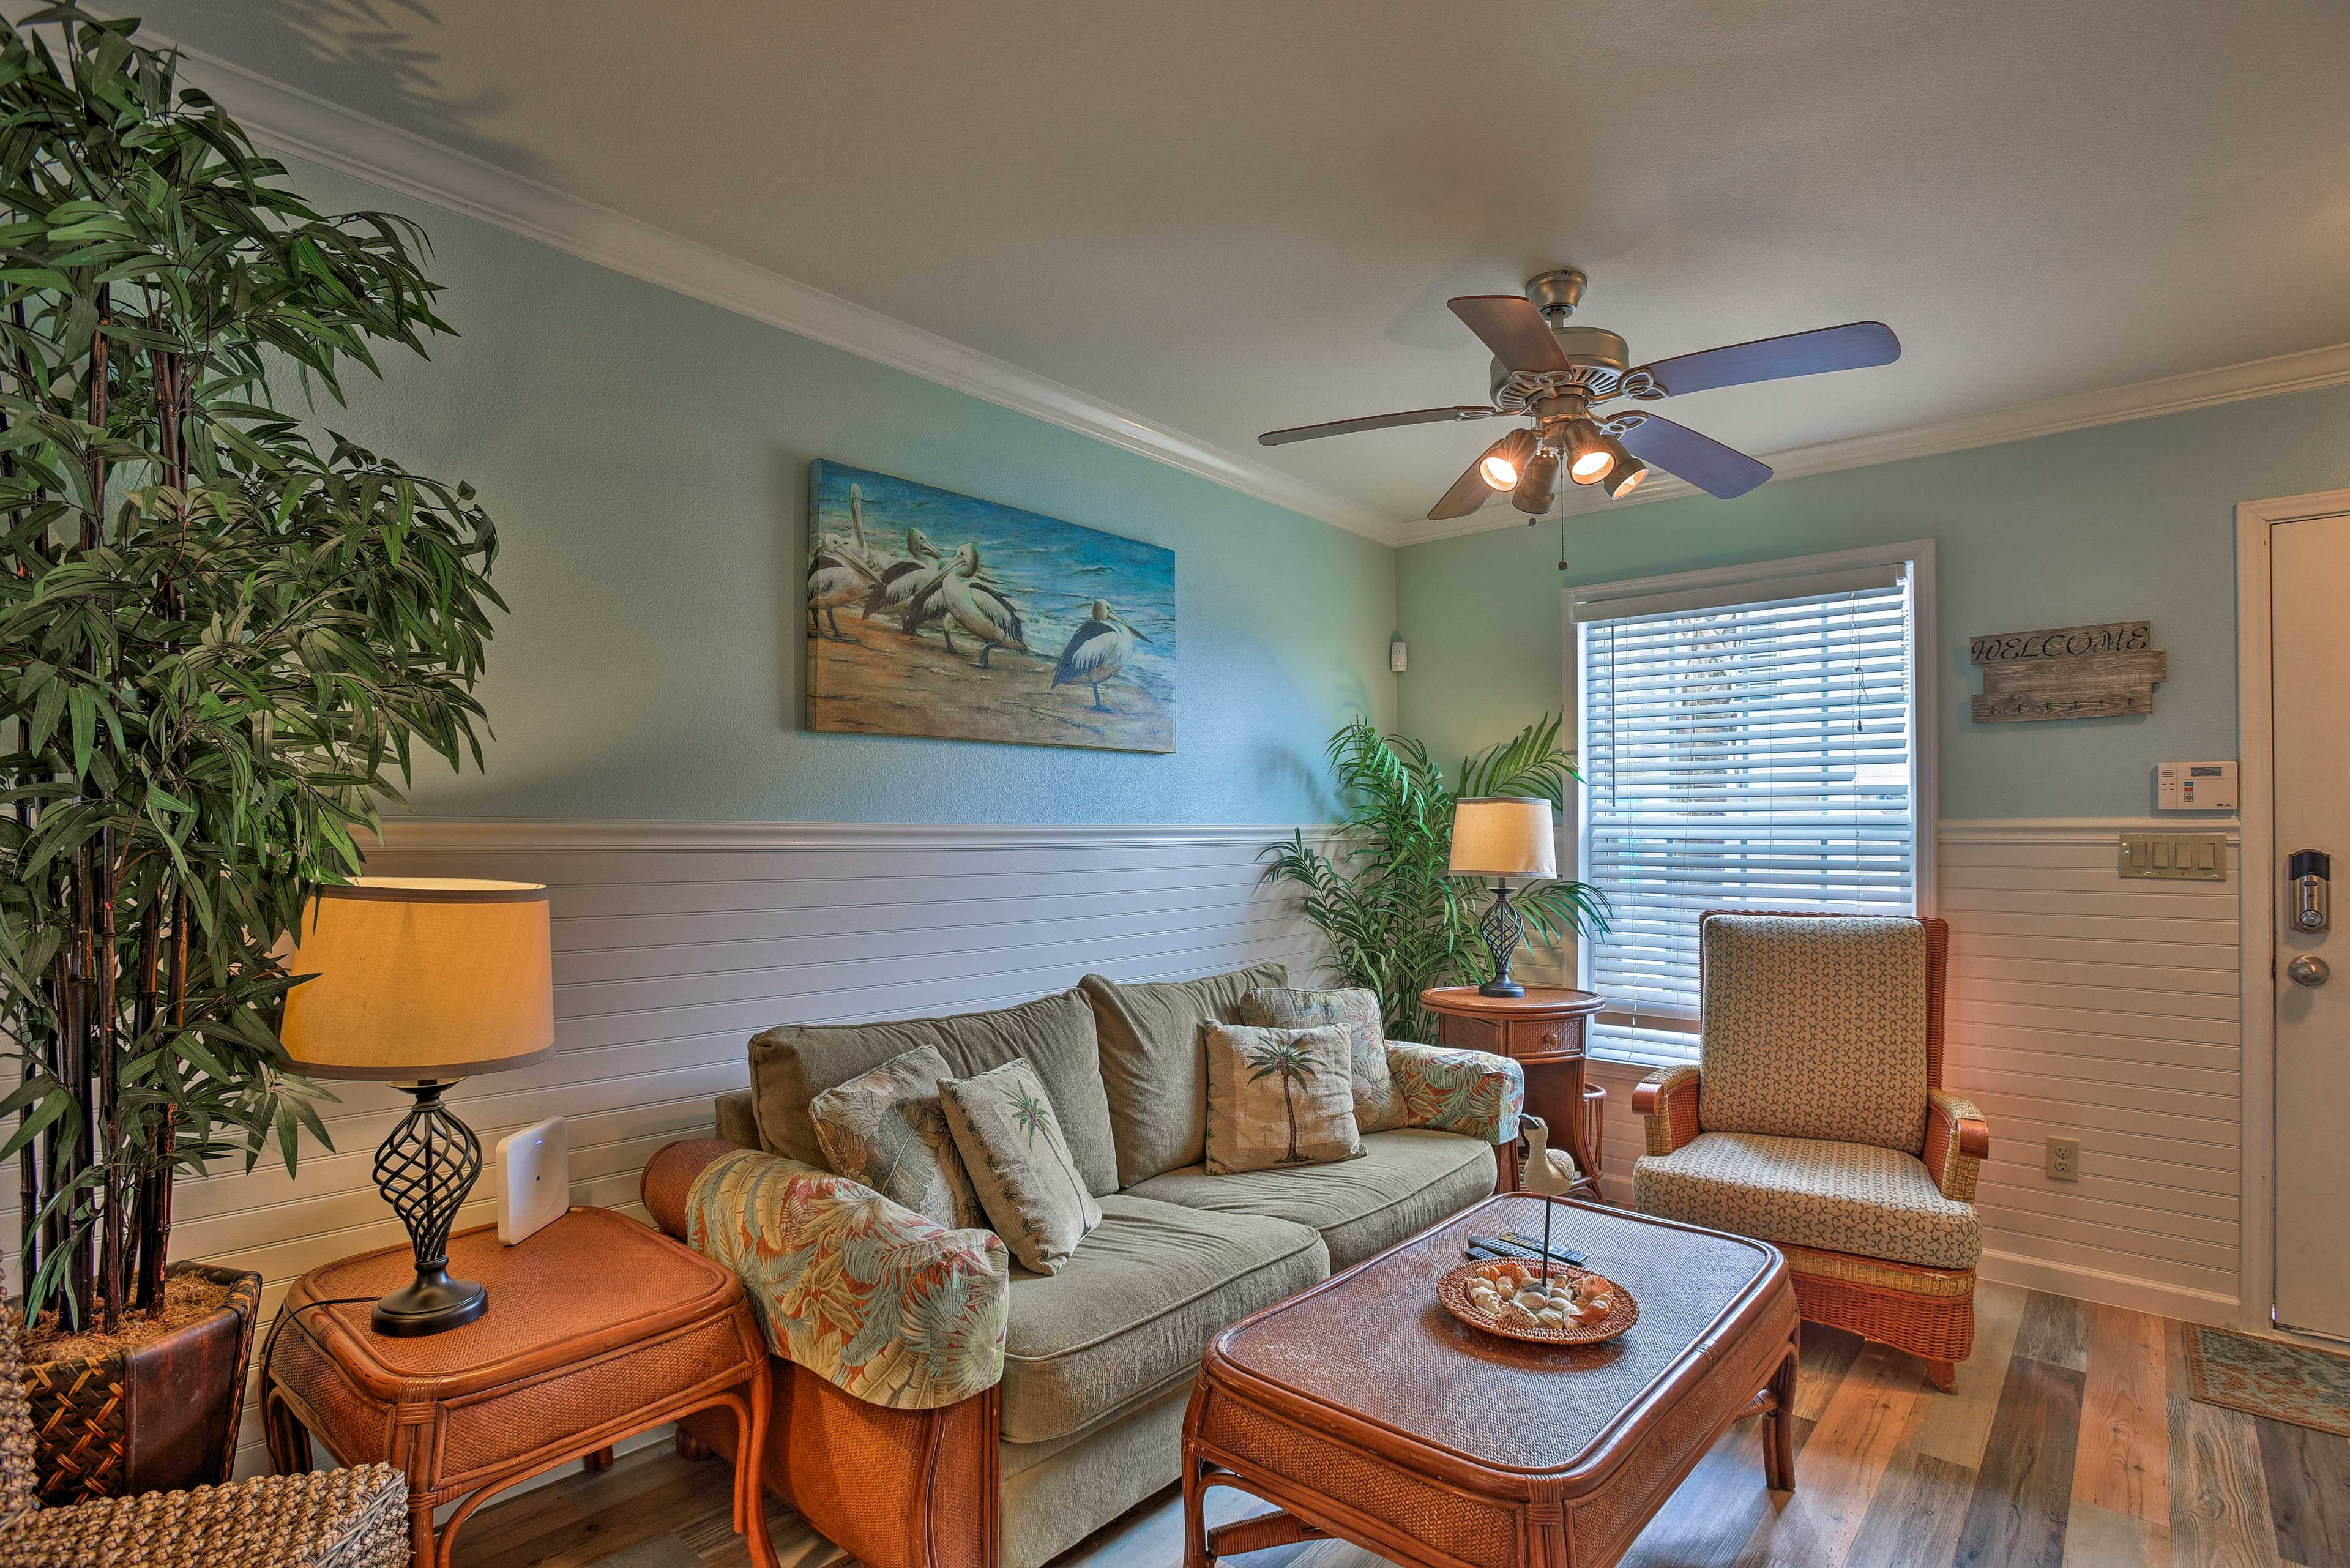 There's 1,554 square feet of comfortable living space to enjoy.